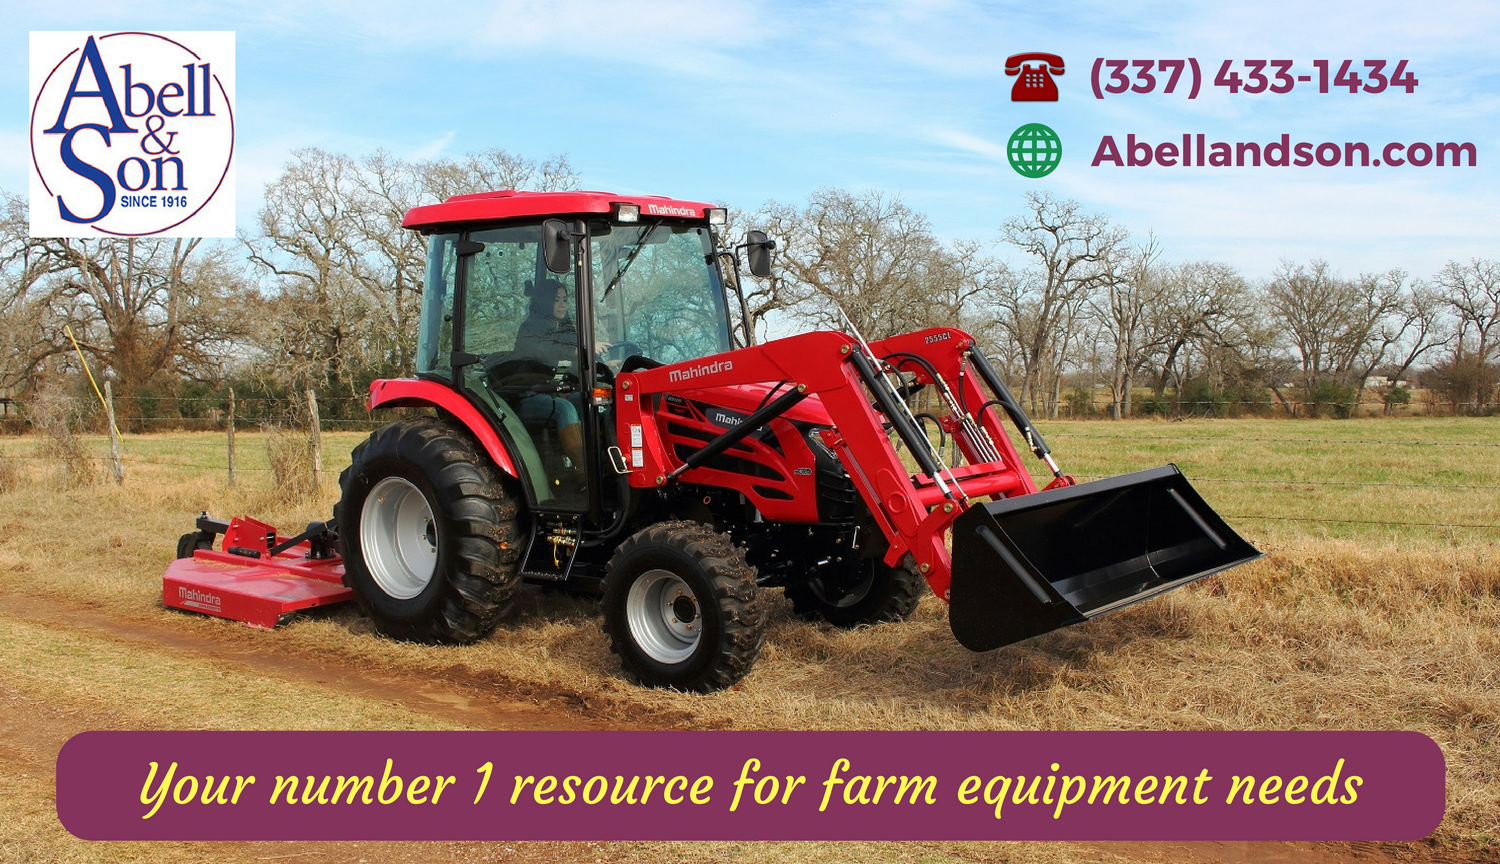 Are You Looking To Best Farm Equipment Abell Amp Son Have A